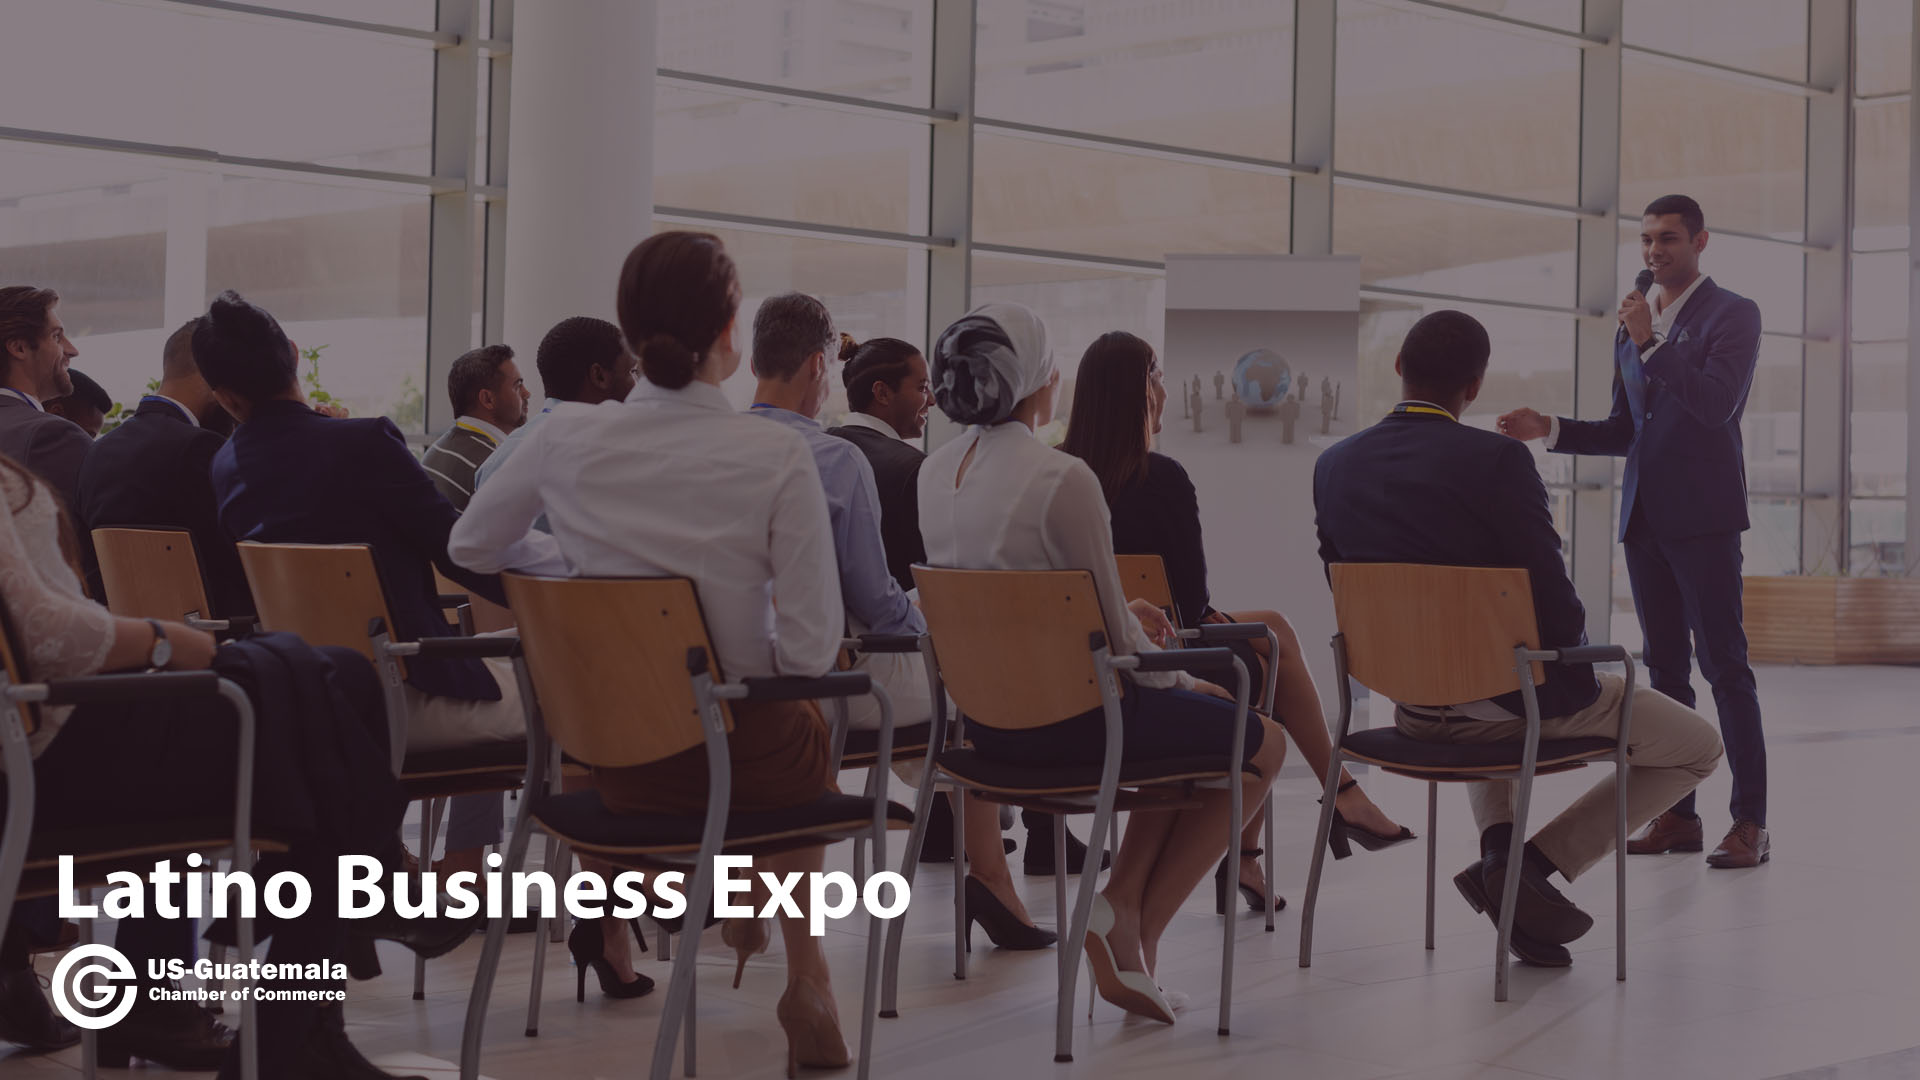 Latino Business Expo